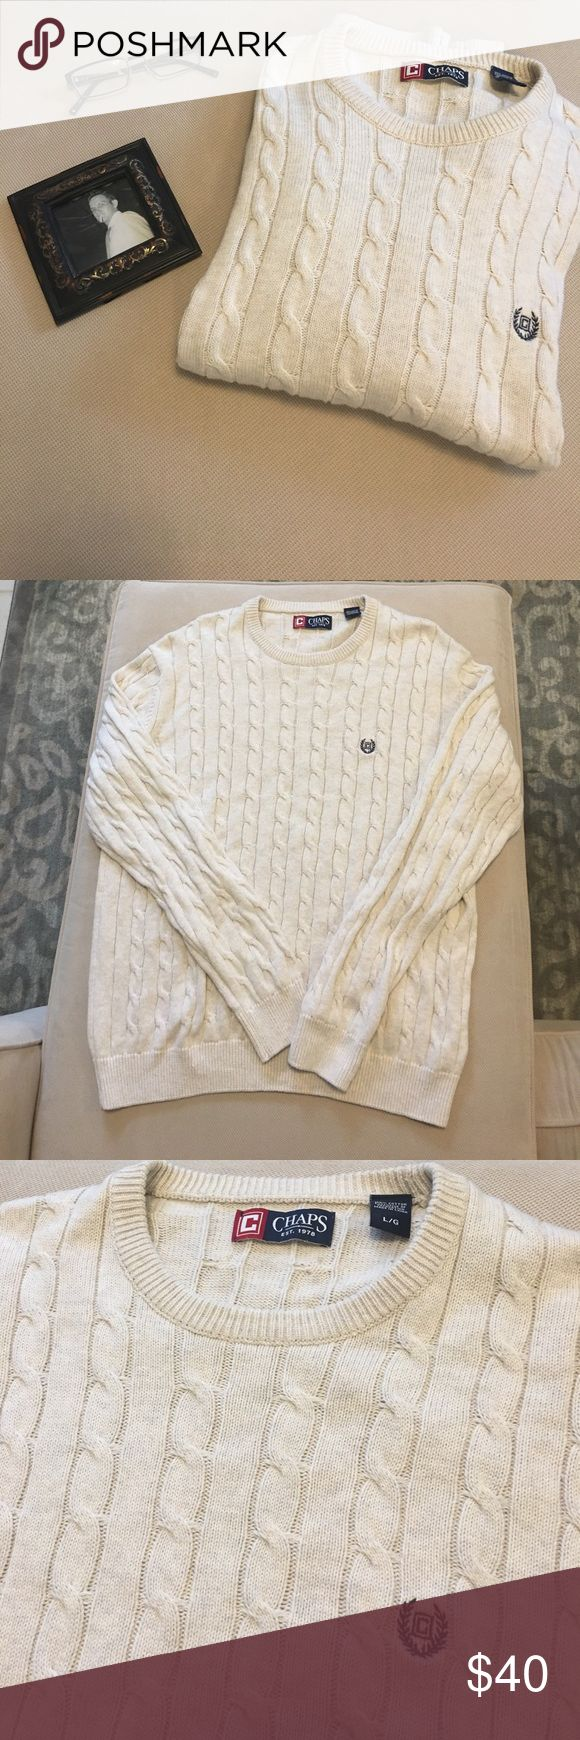 🔅Chaps Oatmeal Heather Cable Knit Crew Sweater Impeccable EUC! Worn once and it's been sitting in the closet. Perfect to throw over the blue flannel shirt I'm also selling in my closet. The sweater is more thin which makes it ready to wear in any season. Chaps Sweaters Crewneck